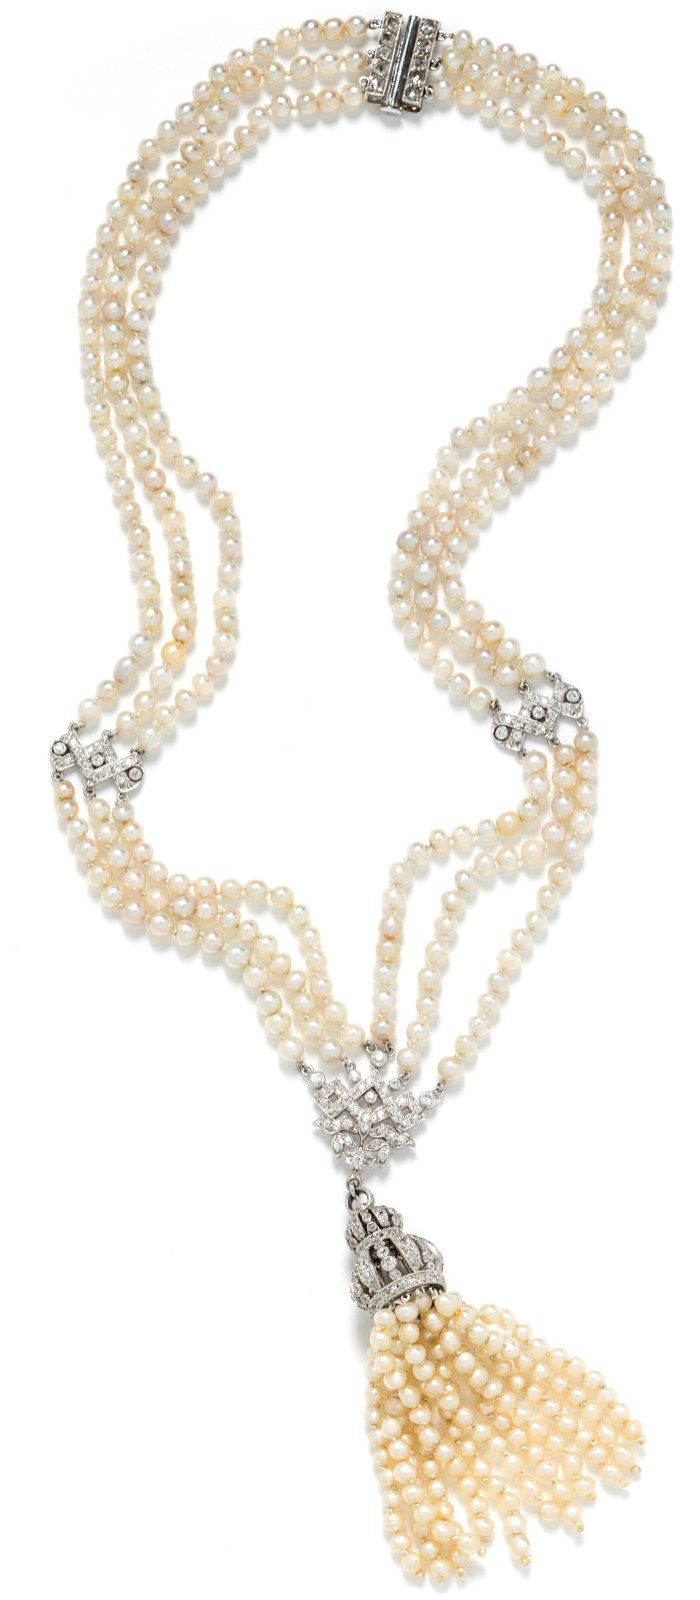 A beautiful antique Art Deco era pearl tassel necklace, with 12 strands of pearls and 137 diamonds.